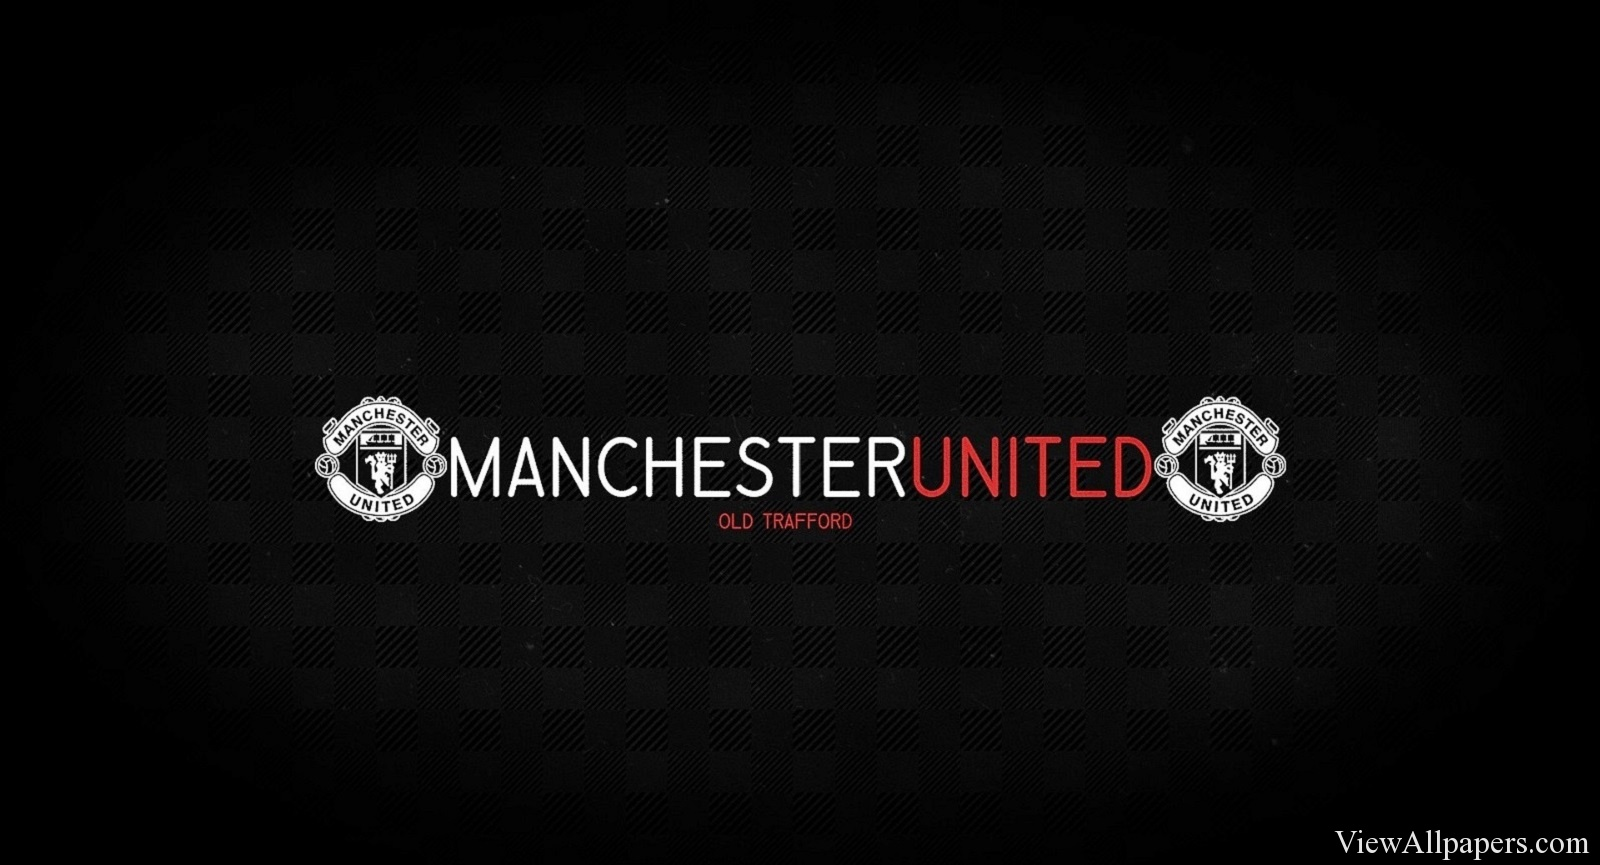 Manchester-United-FC-wallpaper-wpc5806974